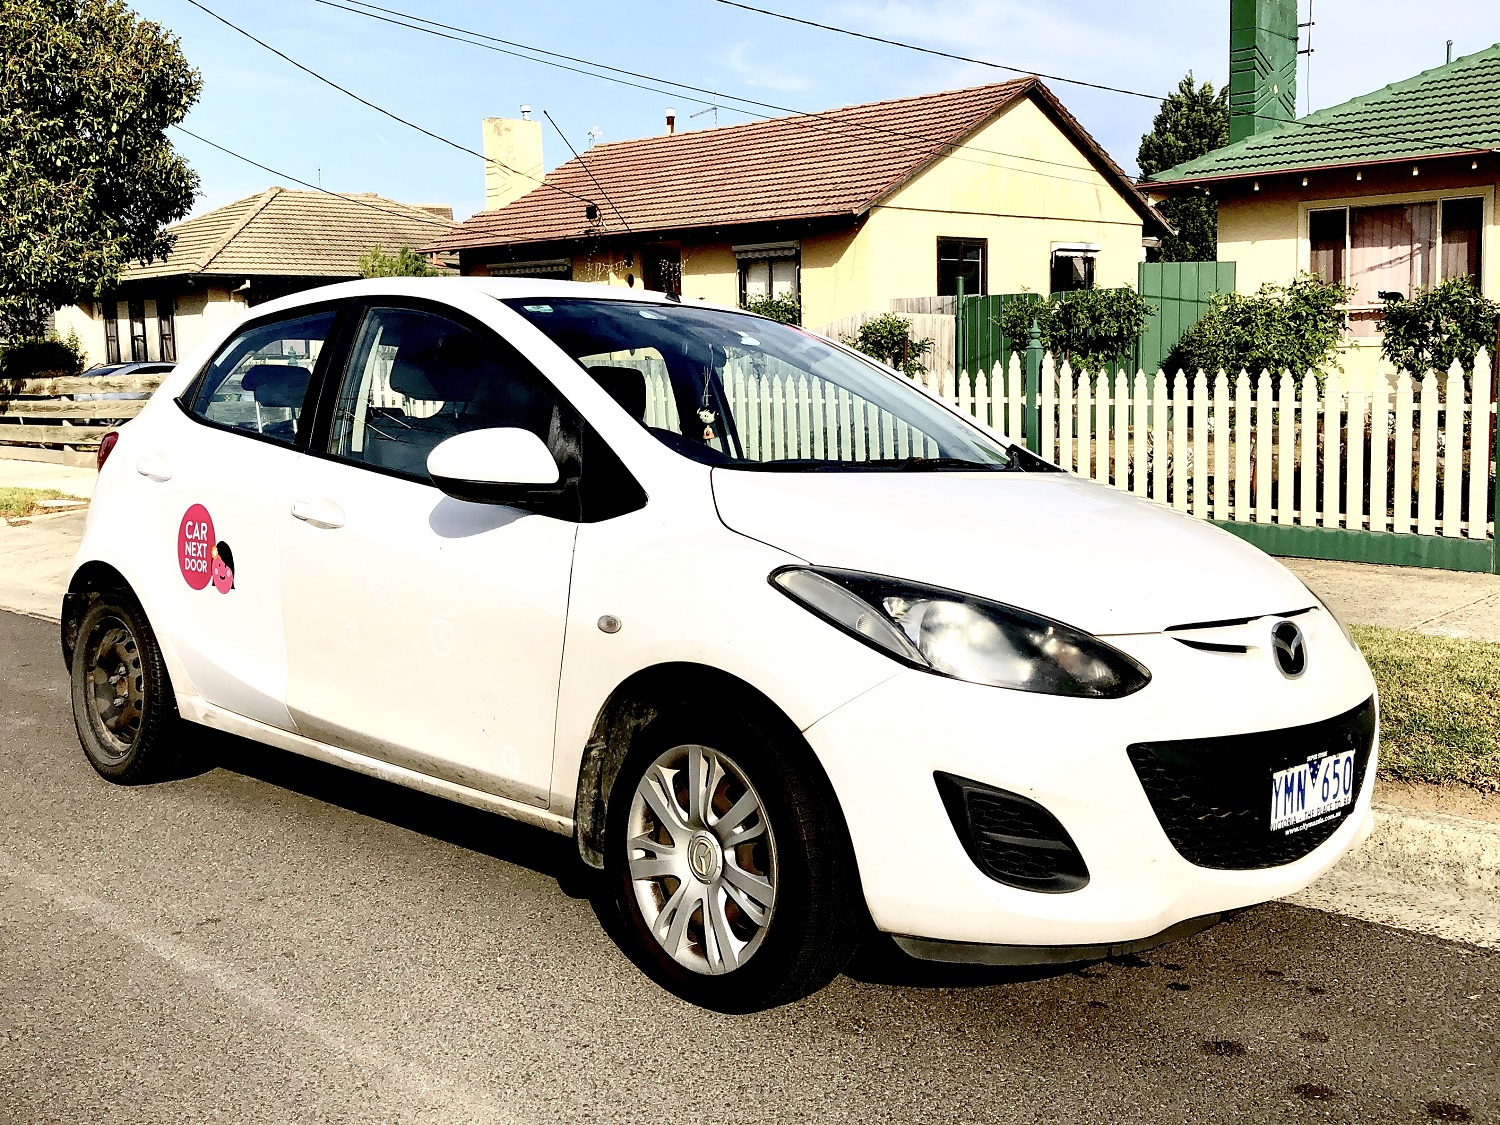 Picture of Estelle's 2011 Mazda 2